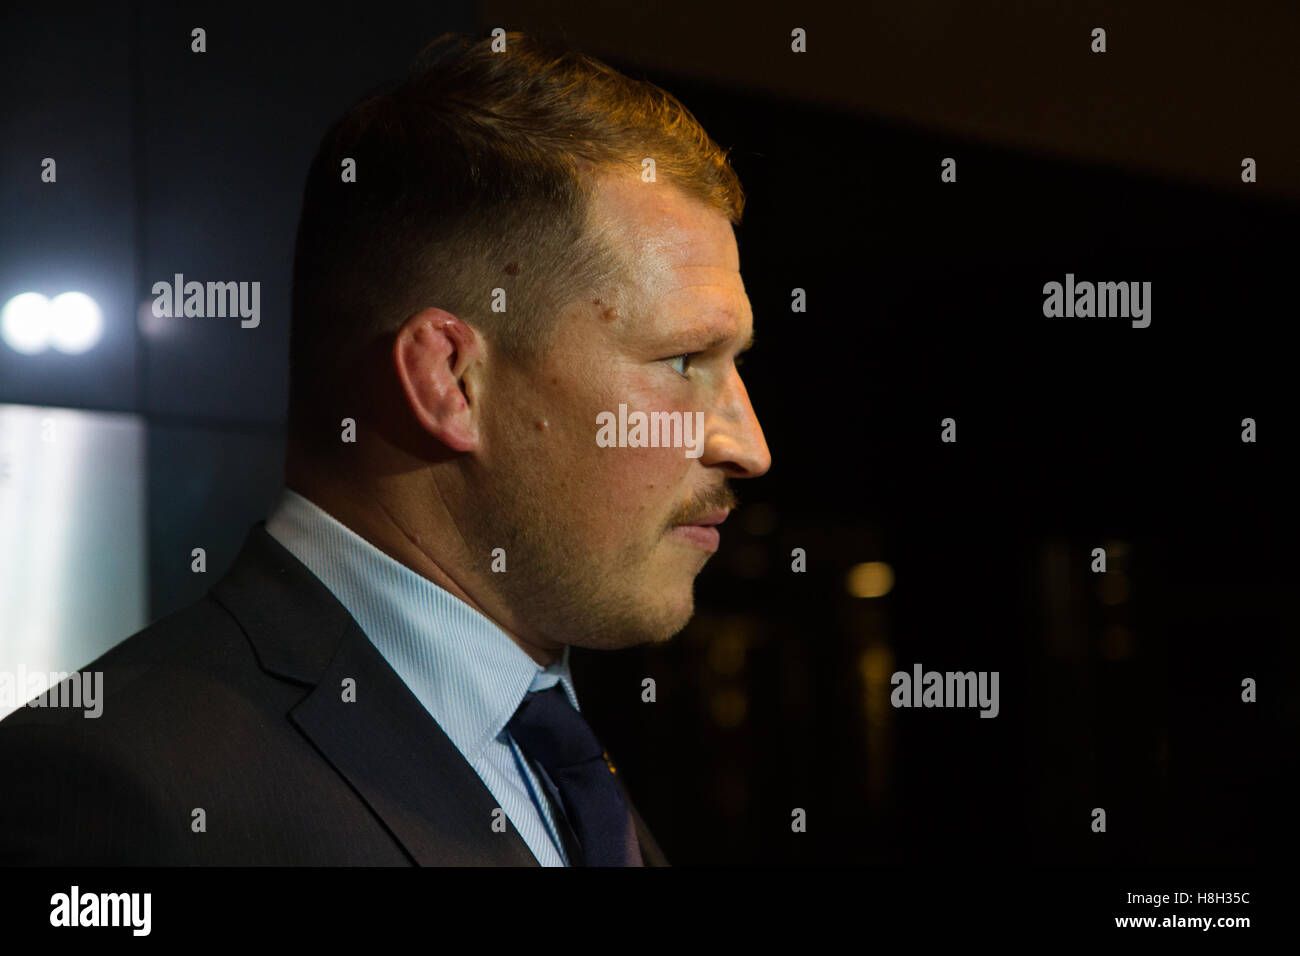 London, UK. 13th November 2016. Dylan Hartley (England captain) arriving for the World Rugby Awards held at The - Stock Image